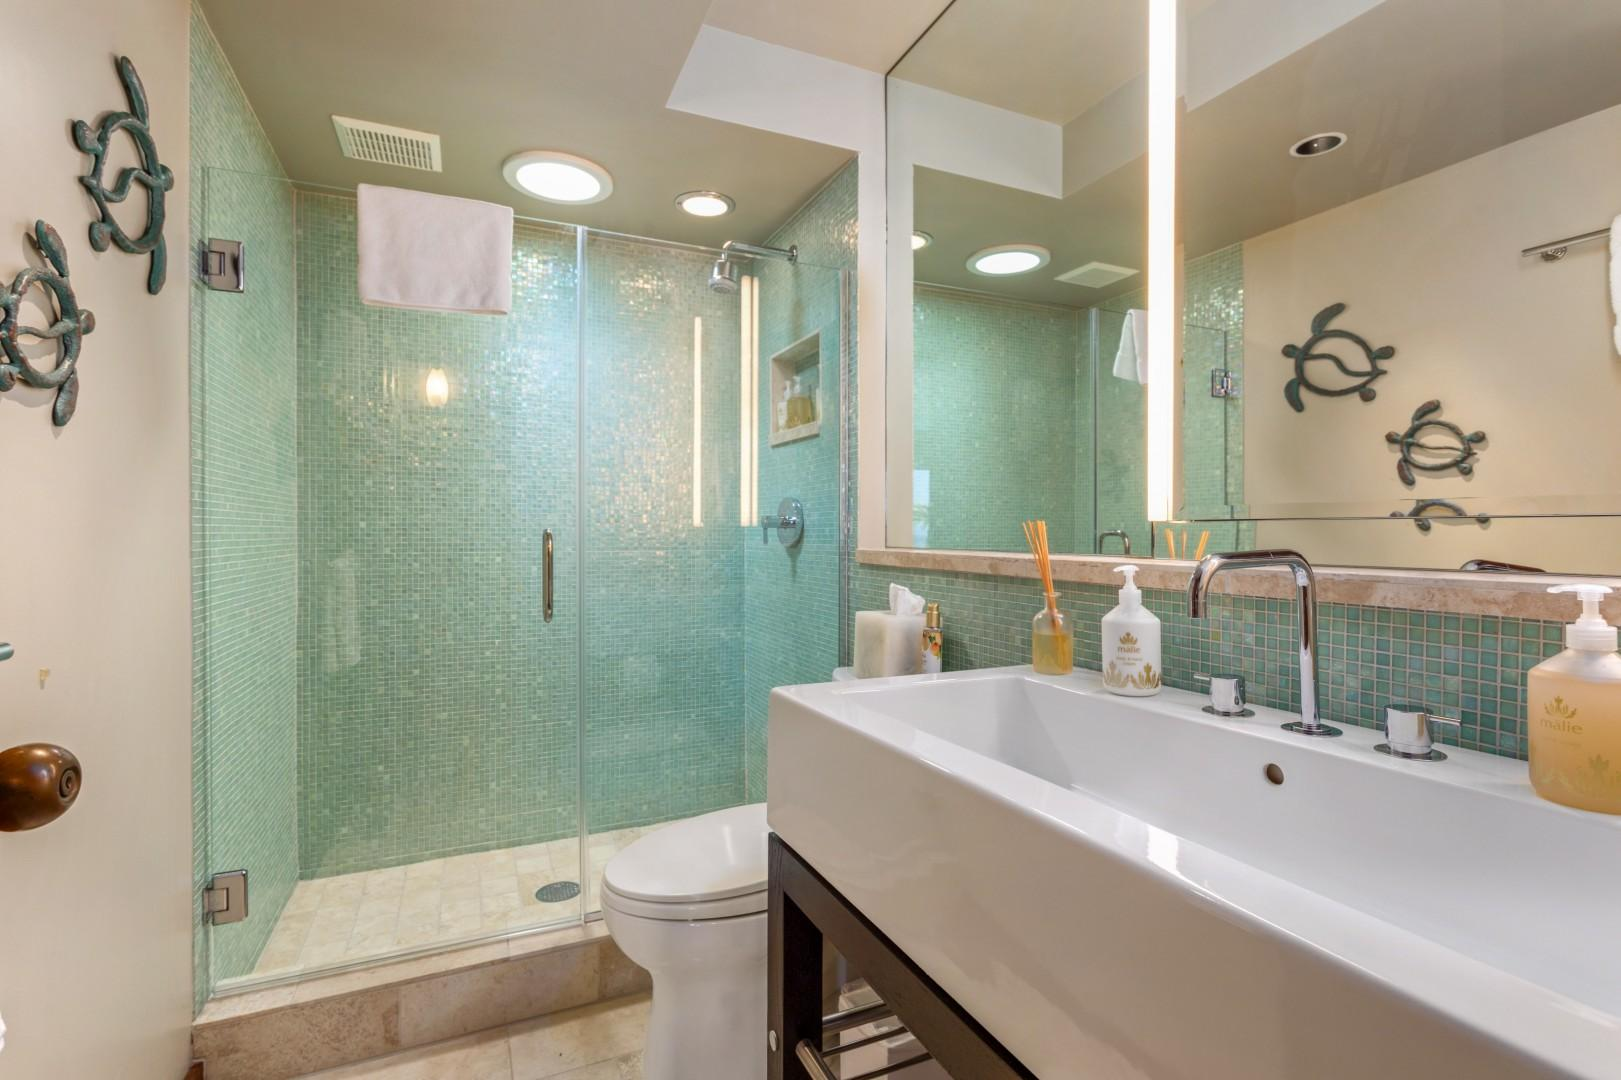 Second Bathroom w/Wide & Deep Sink, Walk-in Shower & Beautiful Tiling.